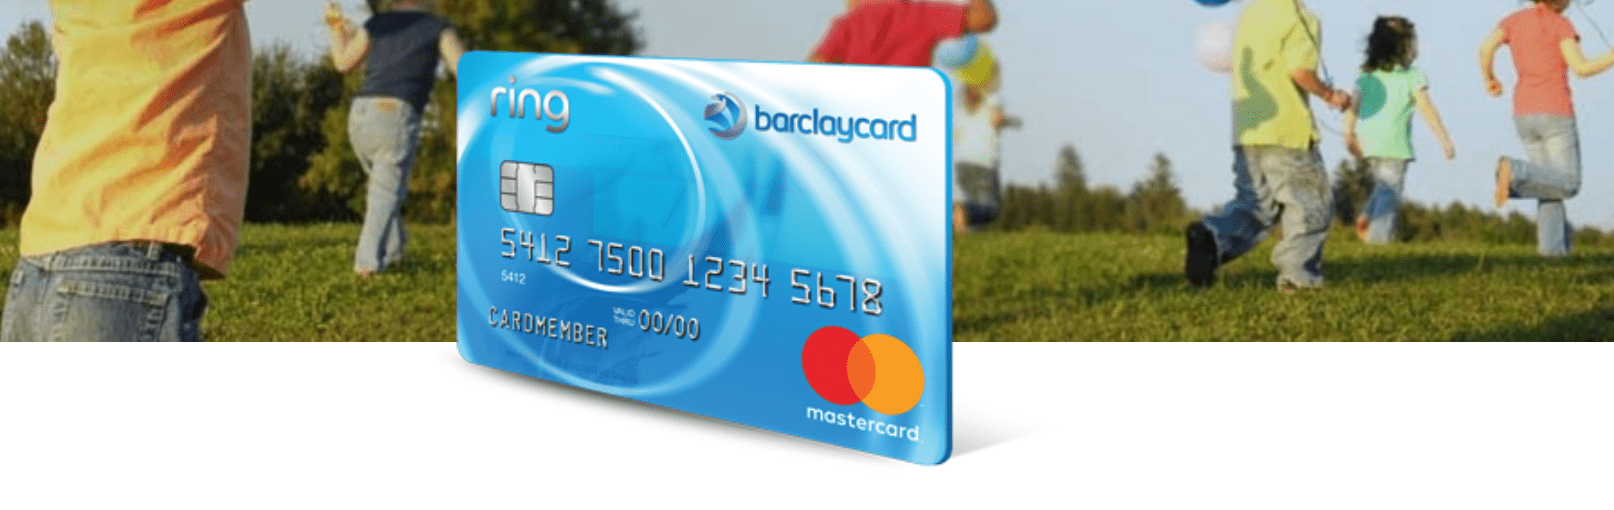 www.barclaysus.com/activate – BarclayCard Activate Login